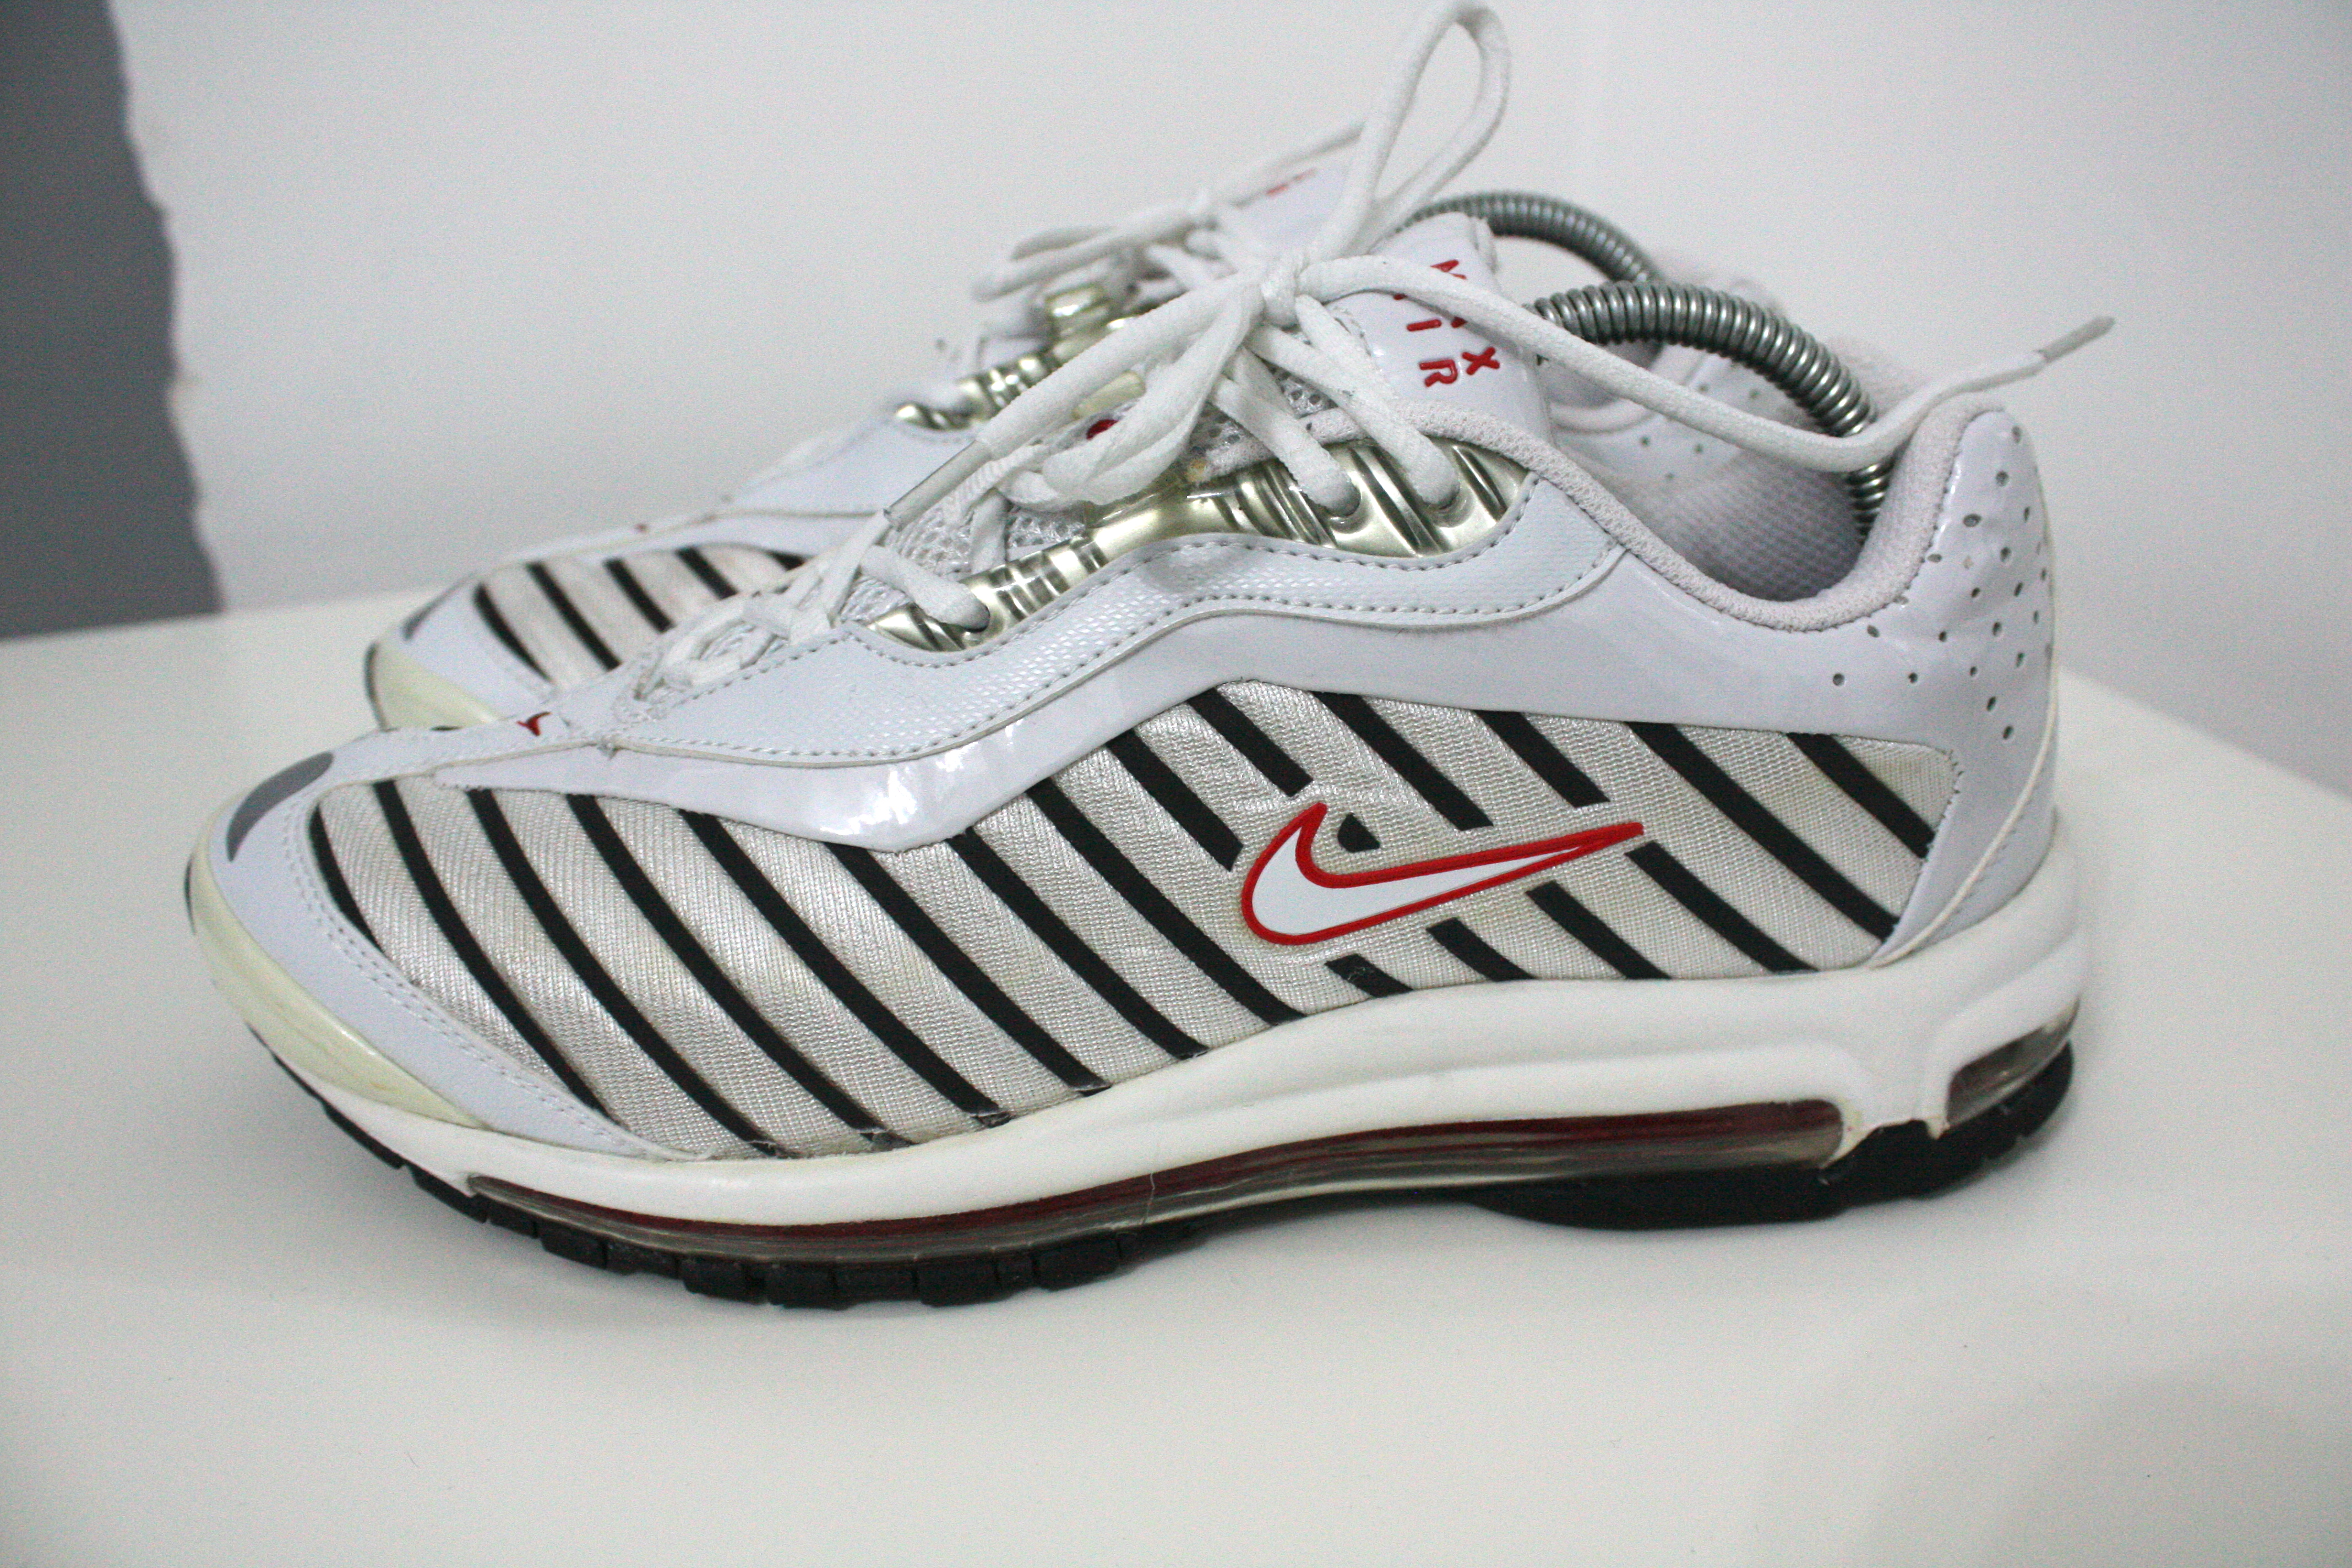 109a8d8221 Nike × Vintage ×. Air Max Deluxe / 2000 ...